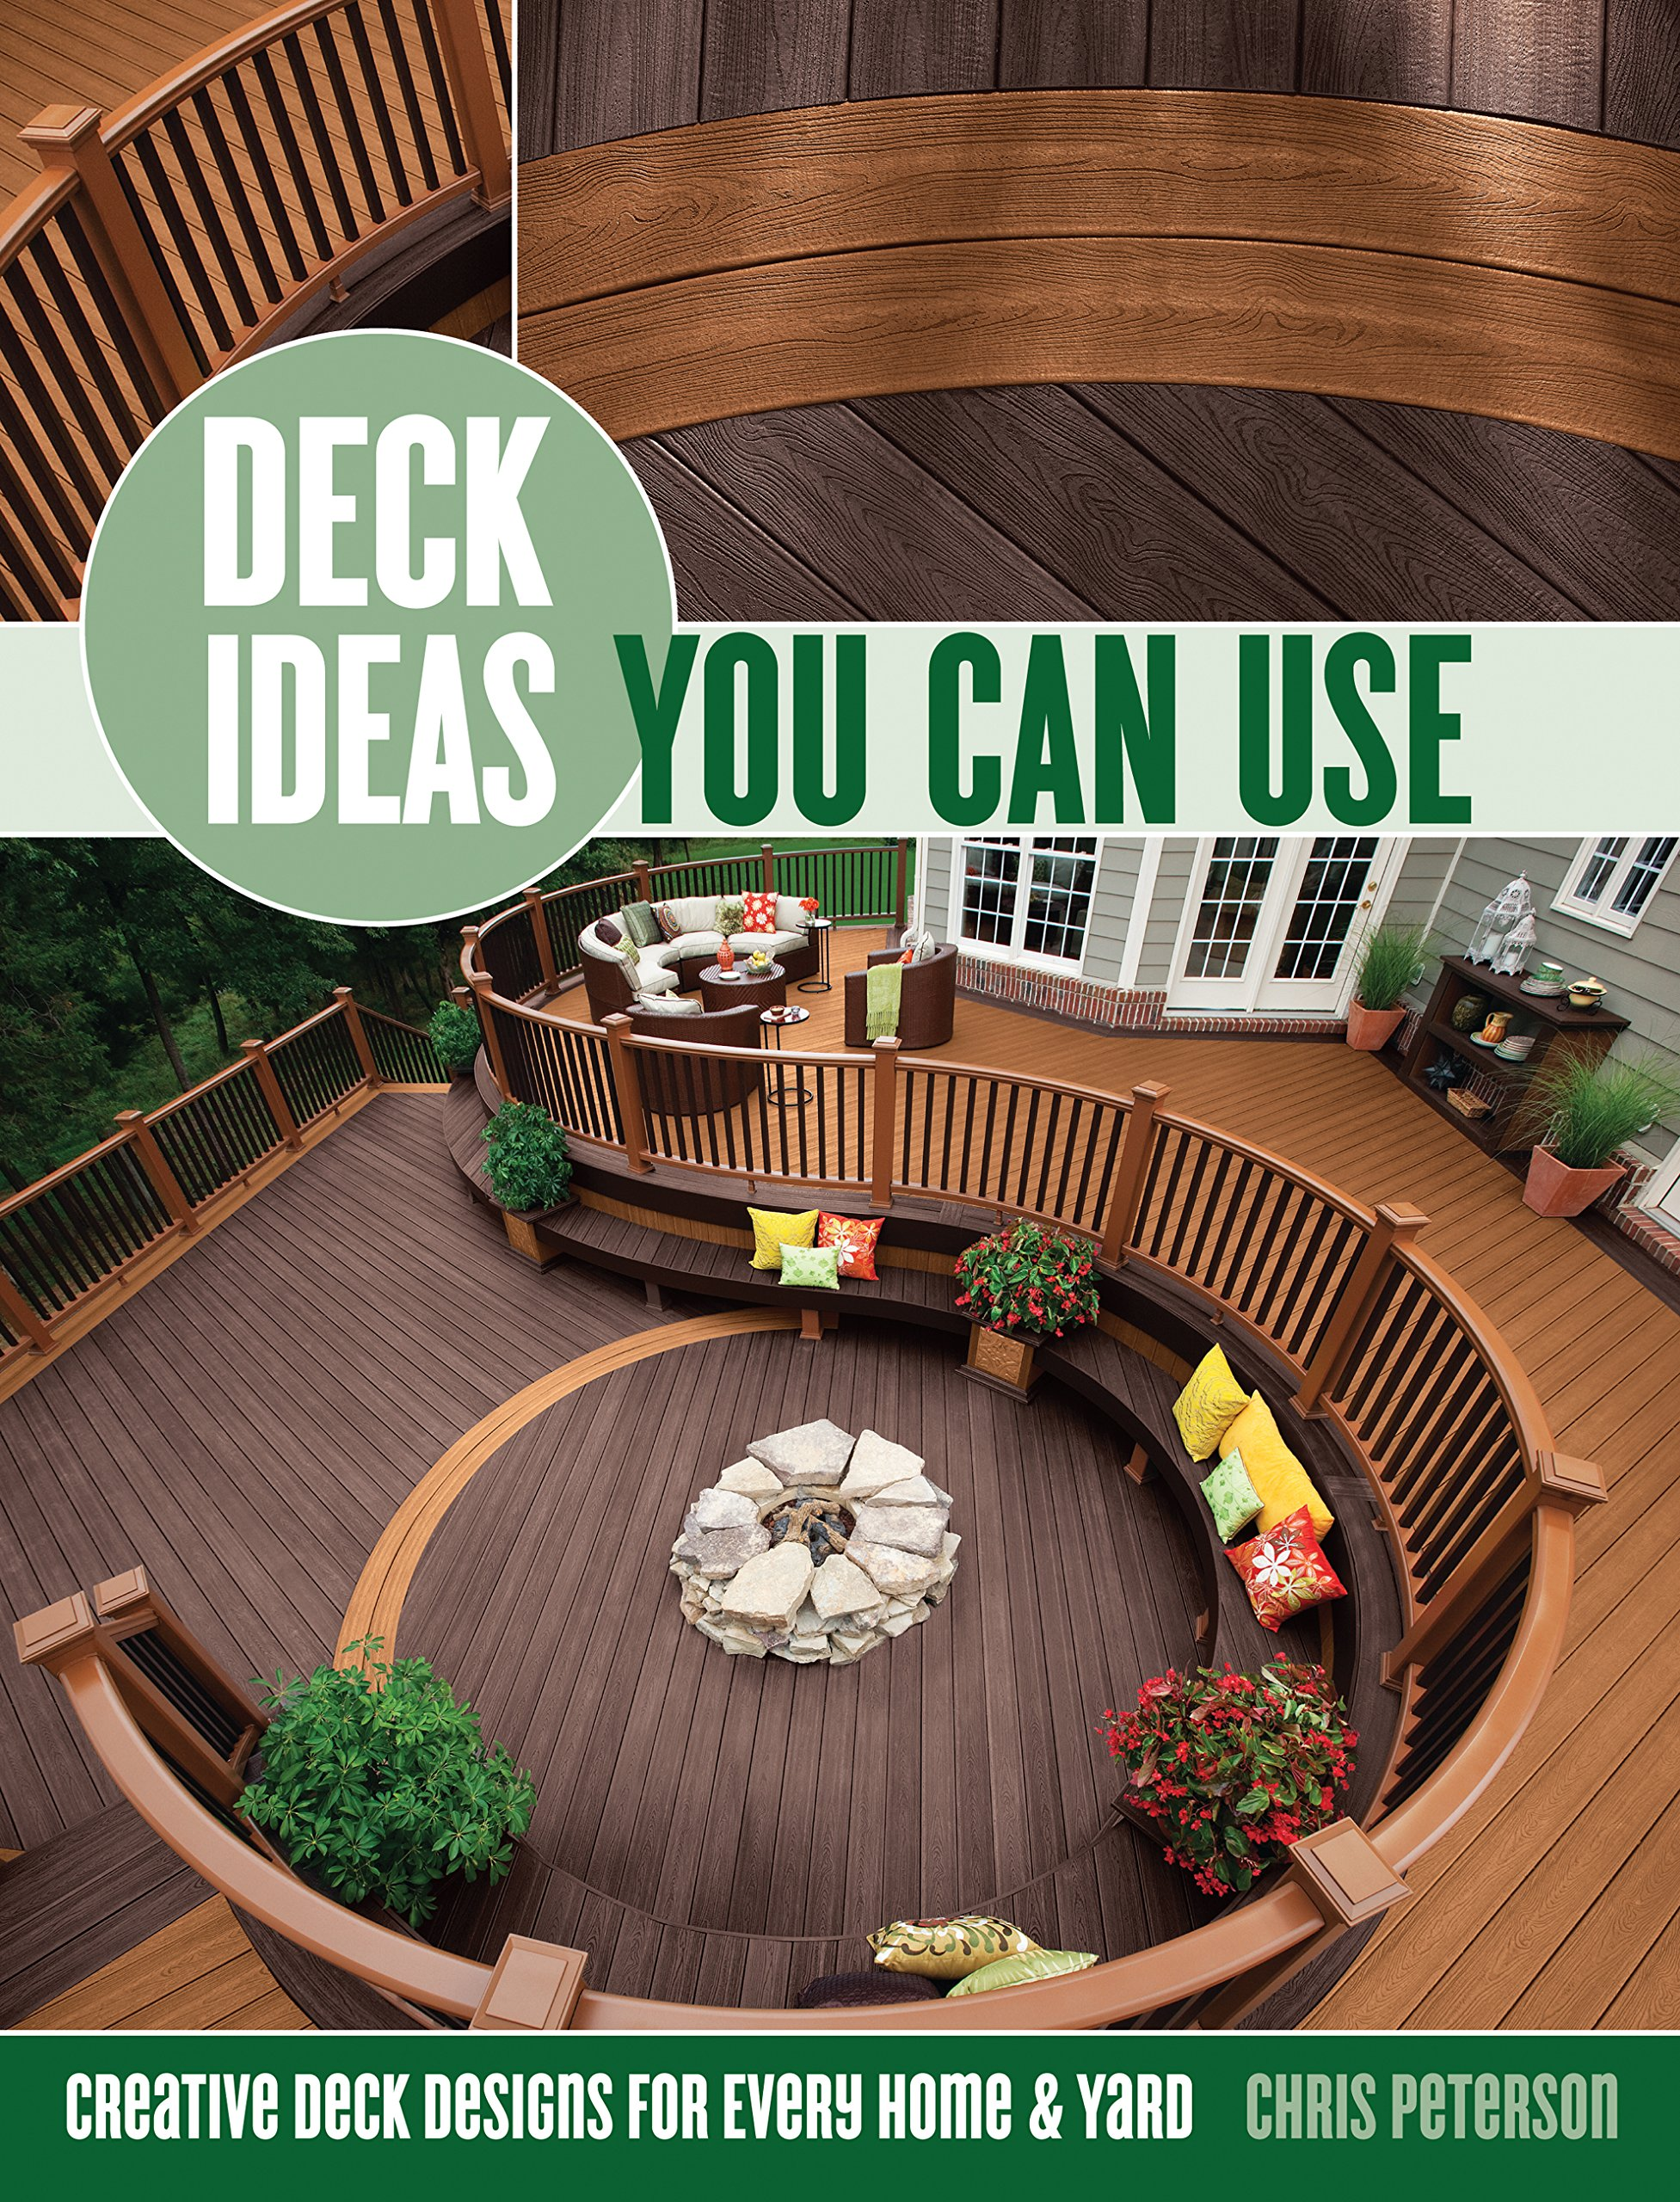 Deck Ideas Your Can Use: Creative Deck Designs for Every Home ...